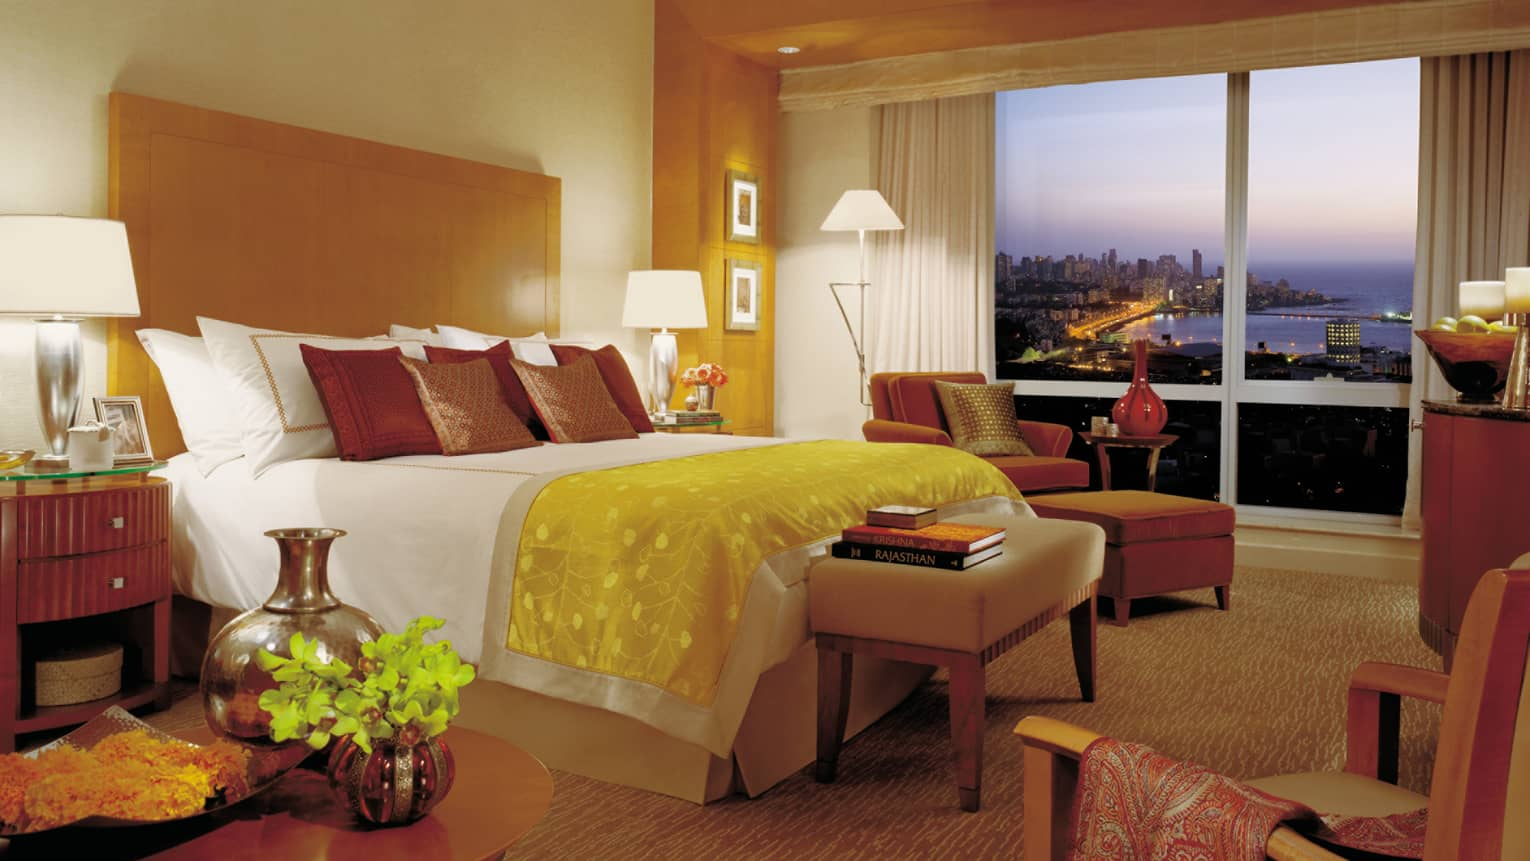 Deluxe Sea-View Room bed with yellow silk blanket, books on bench, chaise by window, sunset